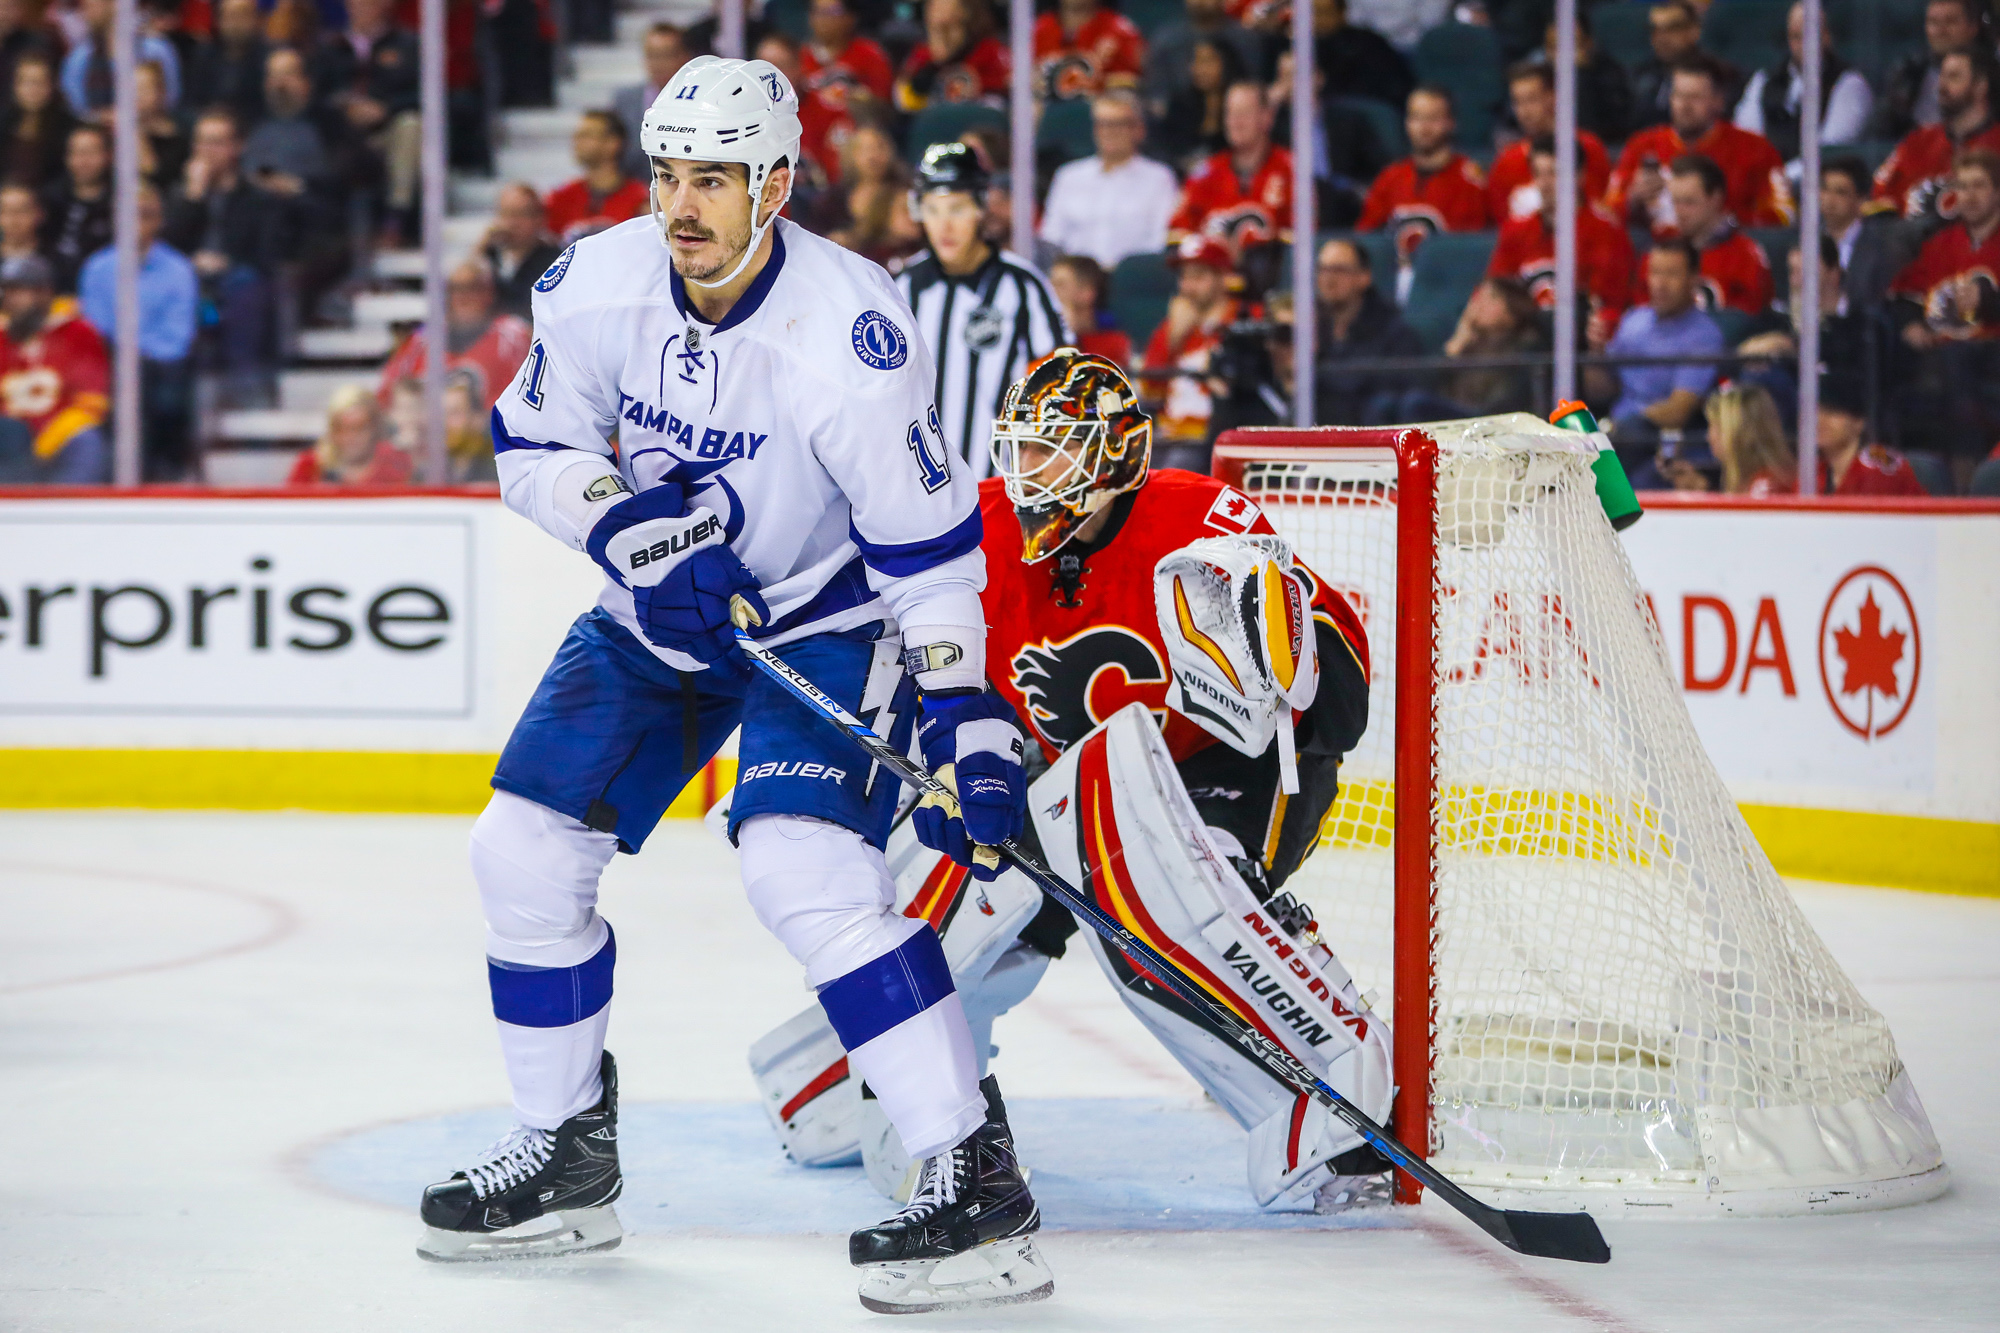 9756627-nhl-tampa-bay-lightning-at-calgary-flames